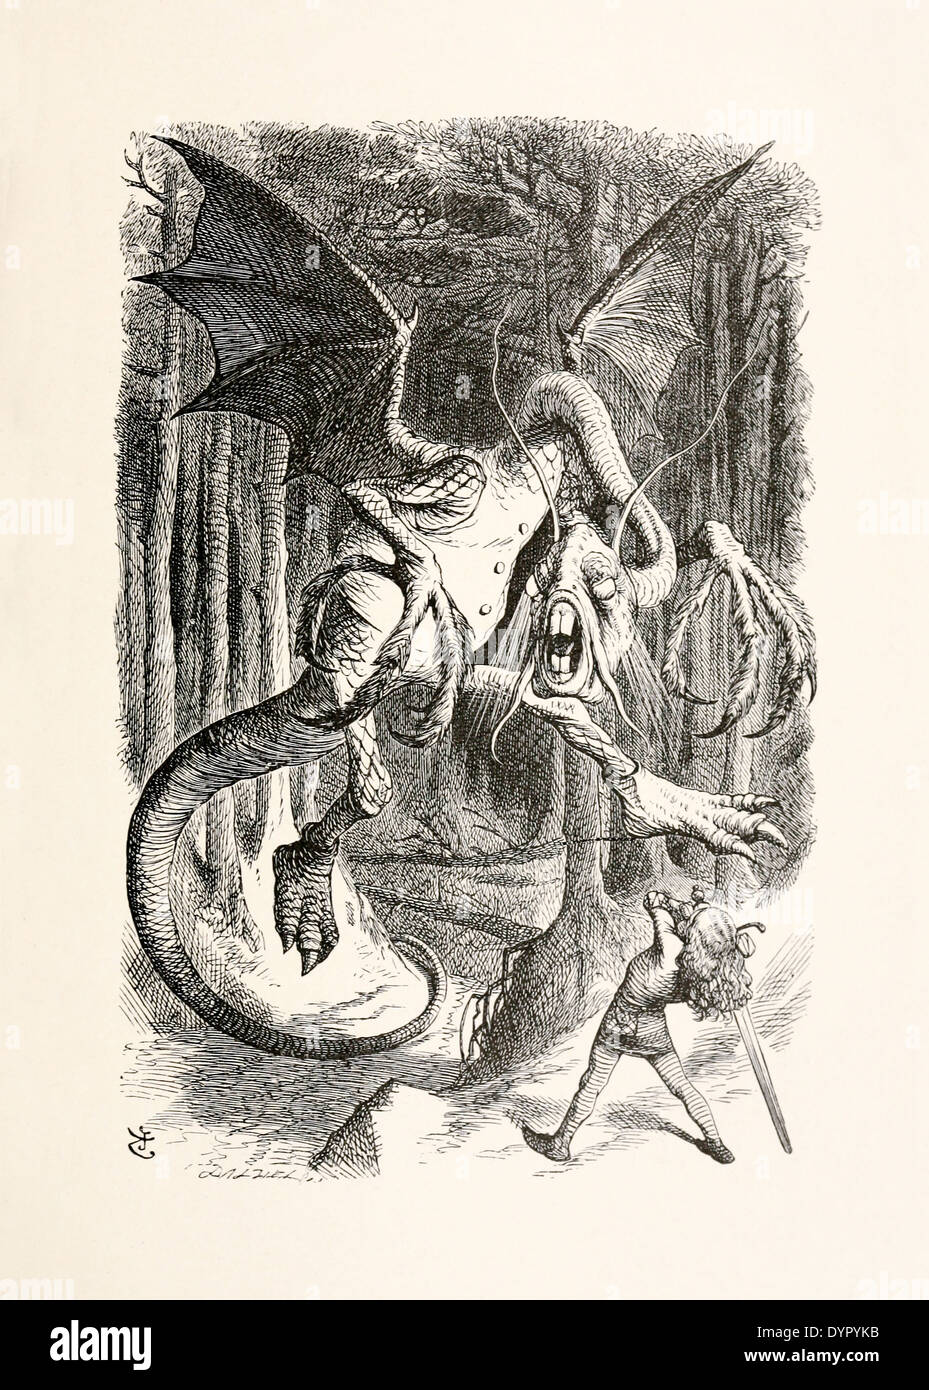 alice kills the jabberwocky